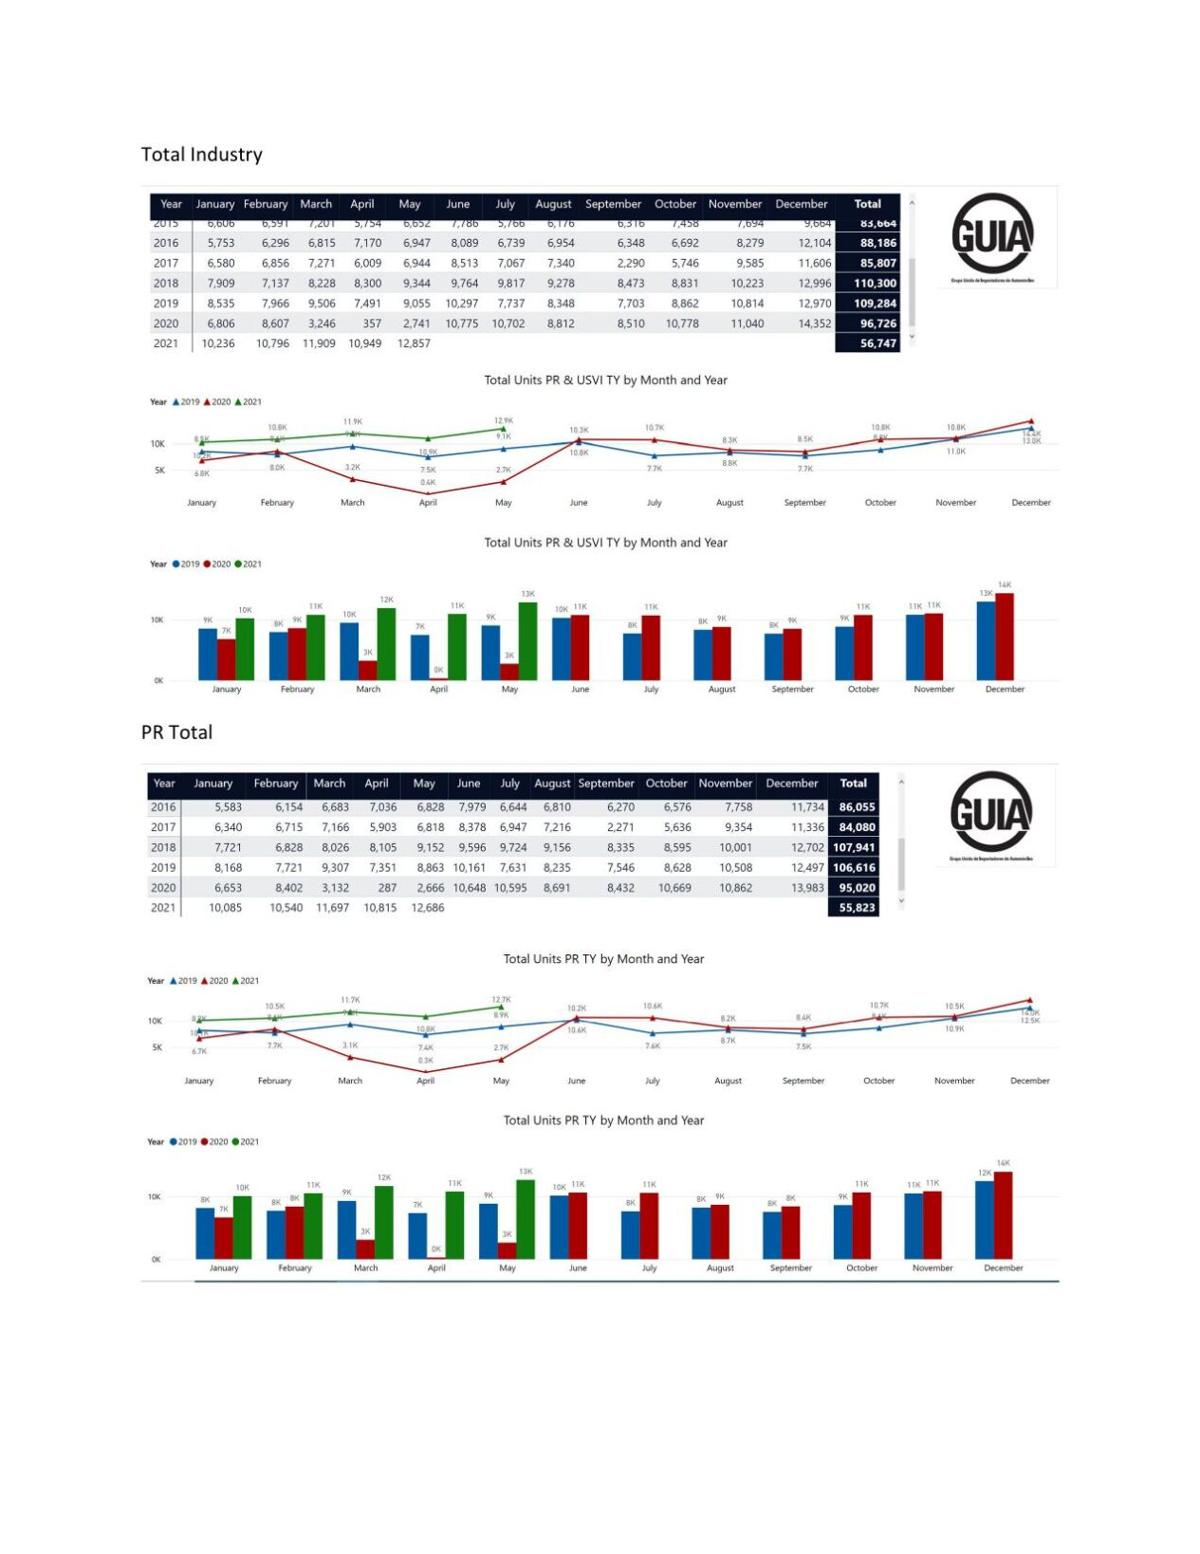 GUIA May 2021 Auto Sales Report